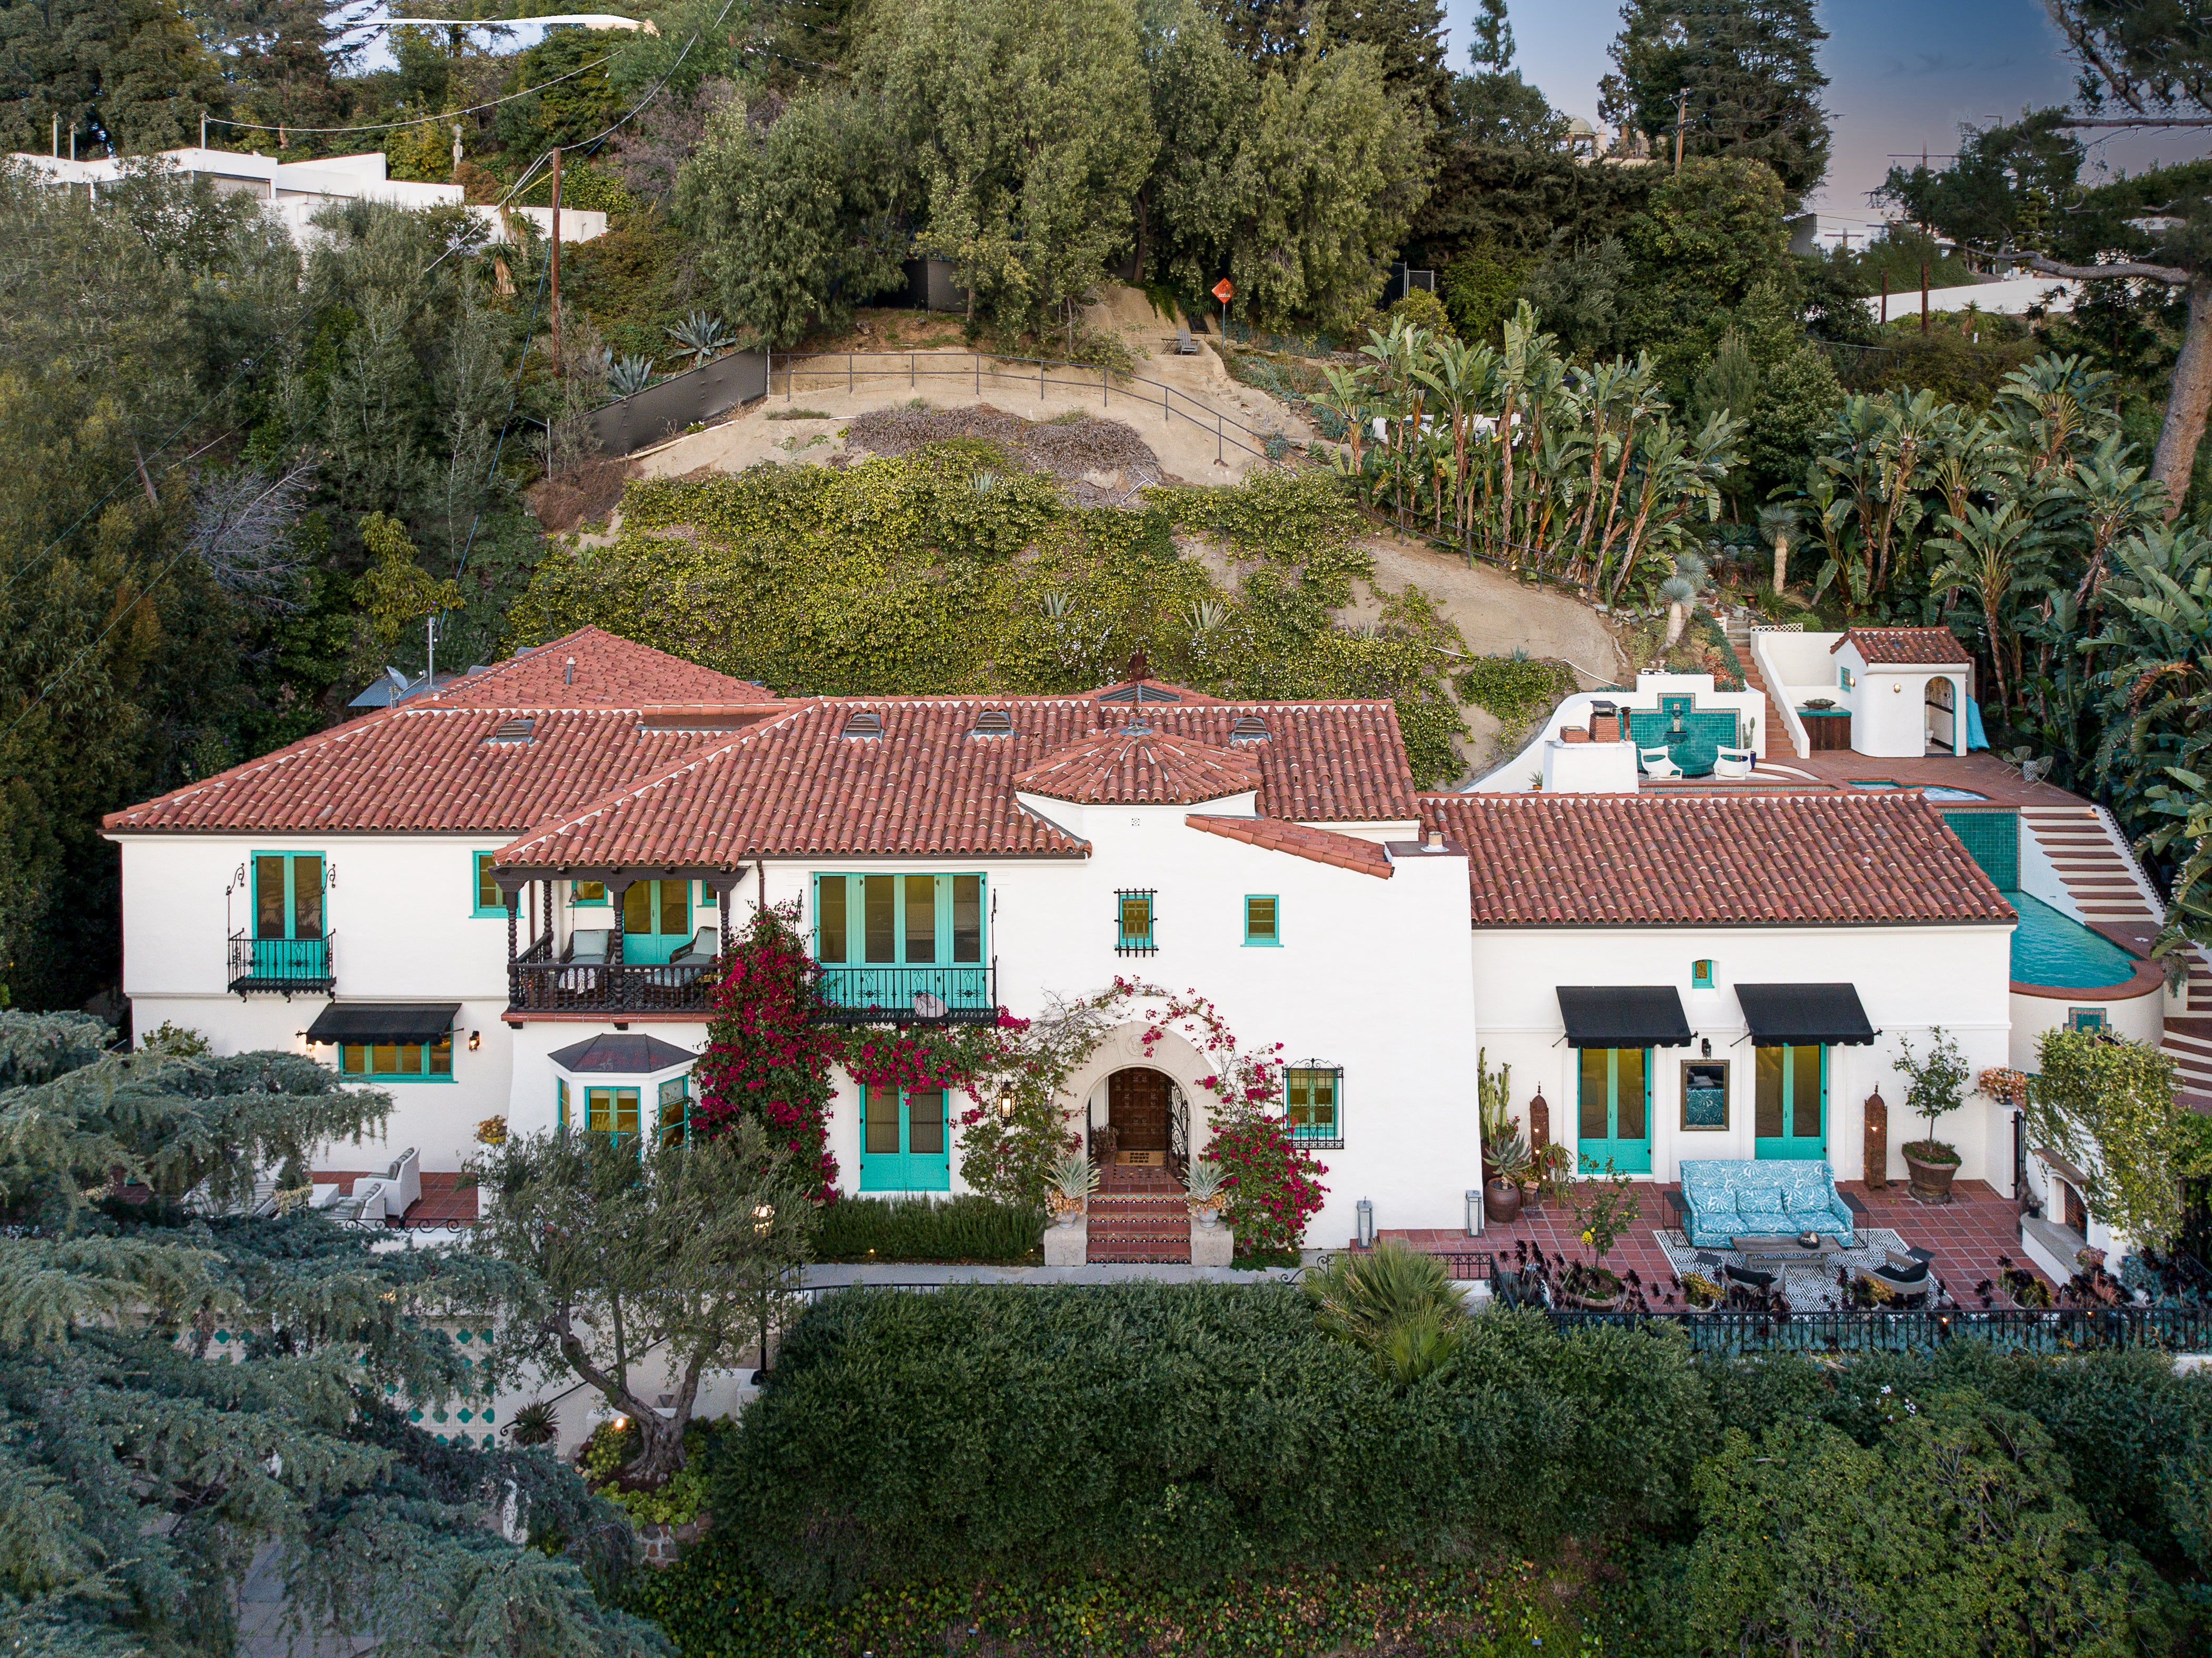 Spanish Colonial home with teal windows